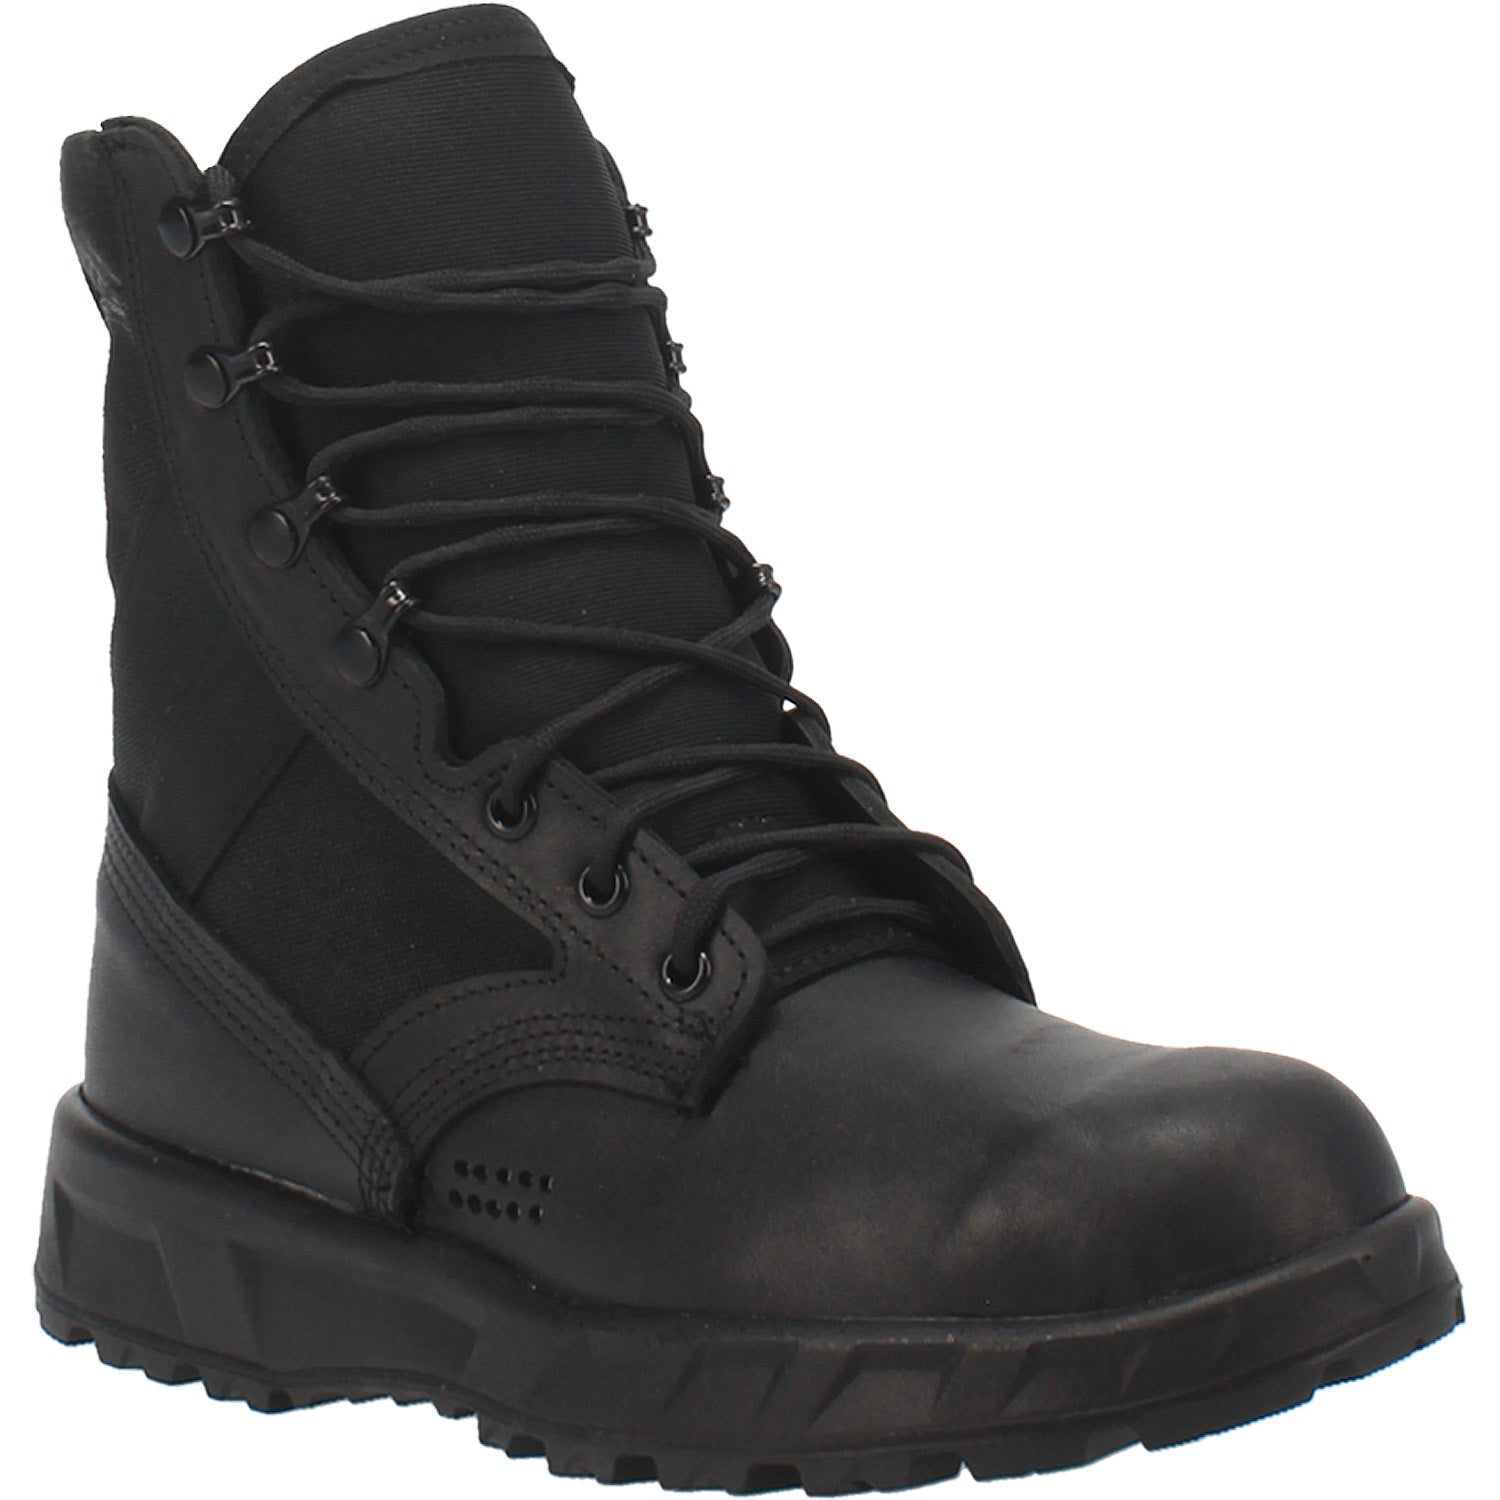 T2 Ultra Light Hot Weather Combat Boot 27986662883370